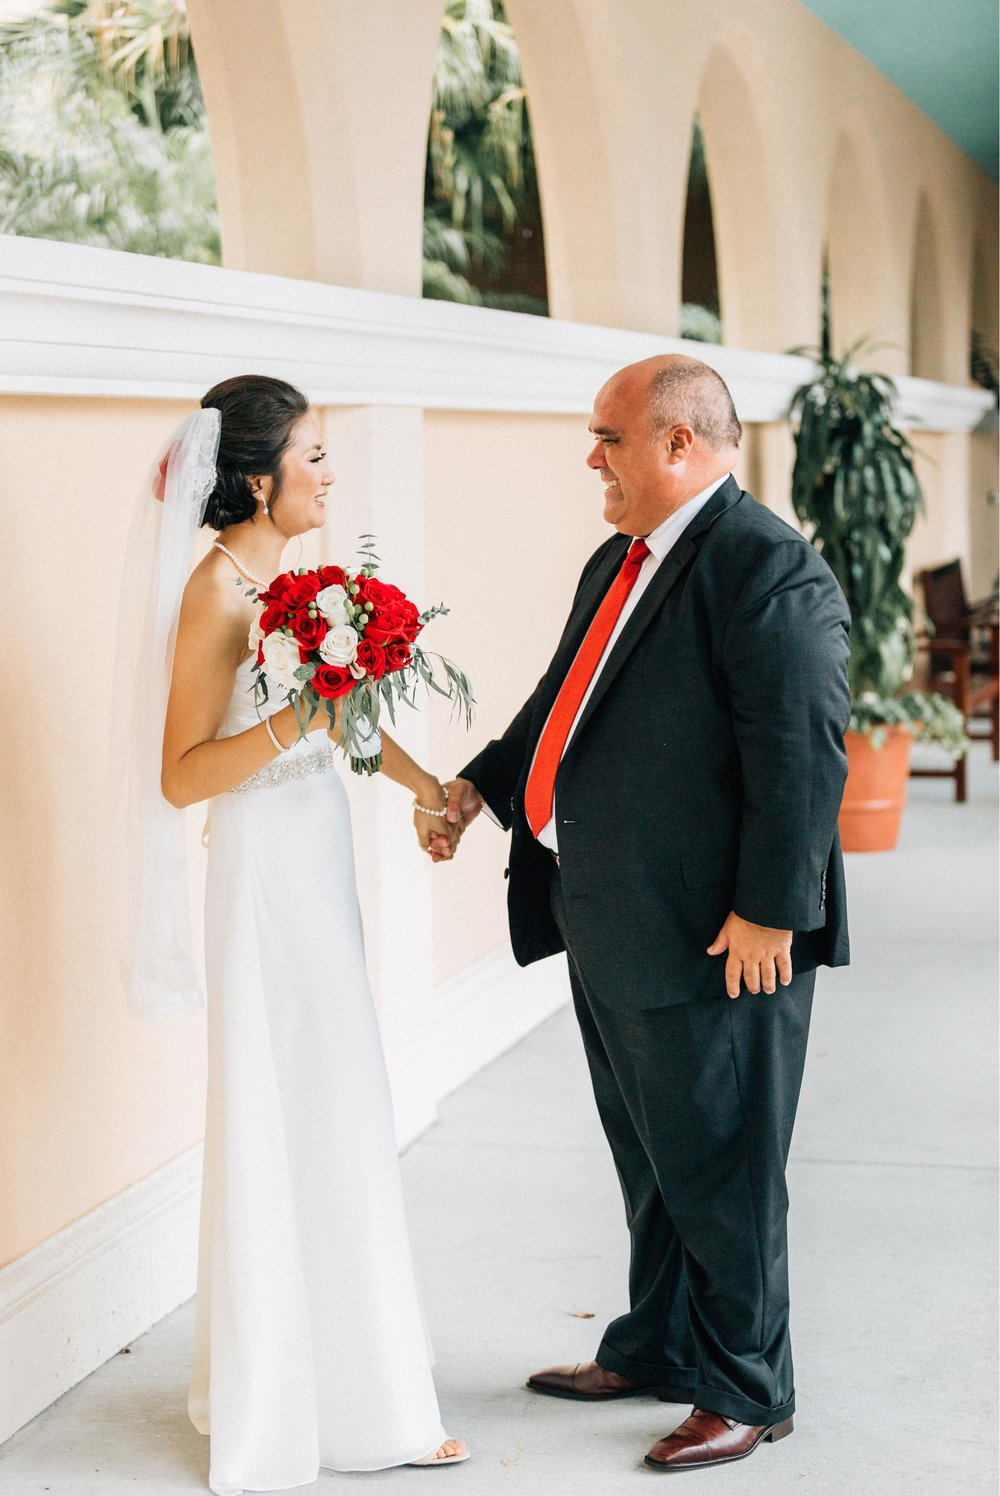 Lakehouse Lake Nona Wedding- Modern Colorful Red Multicultural- Susan + Manolo 55.jpg